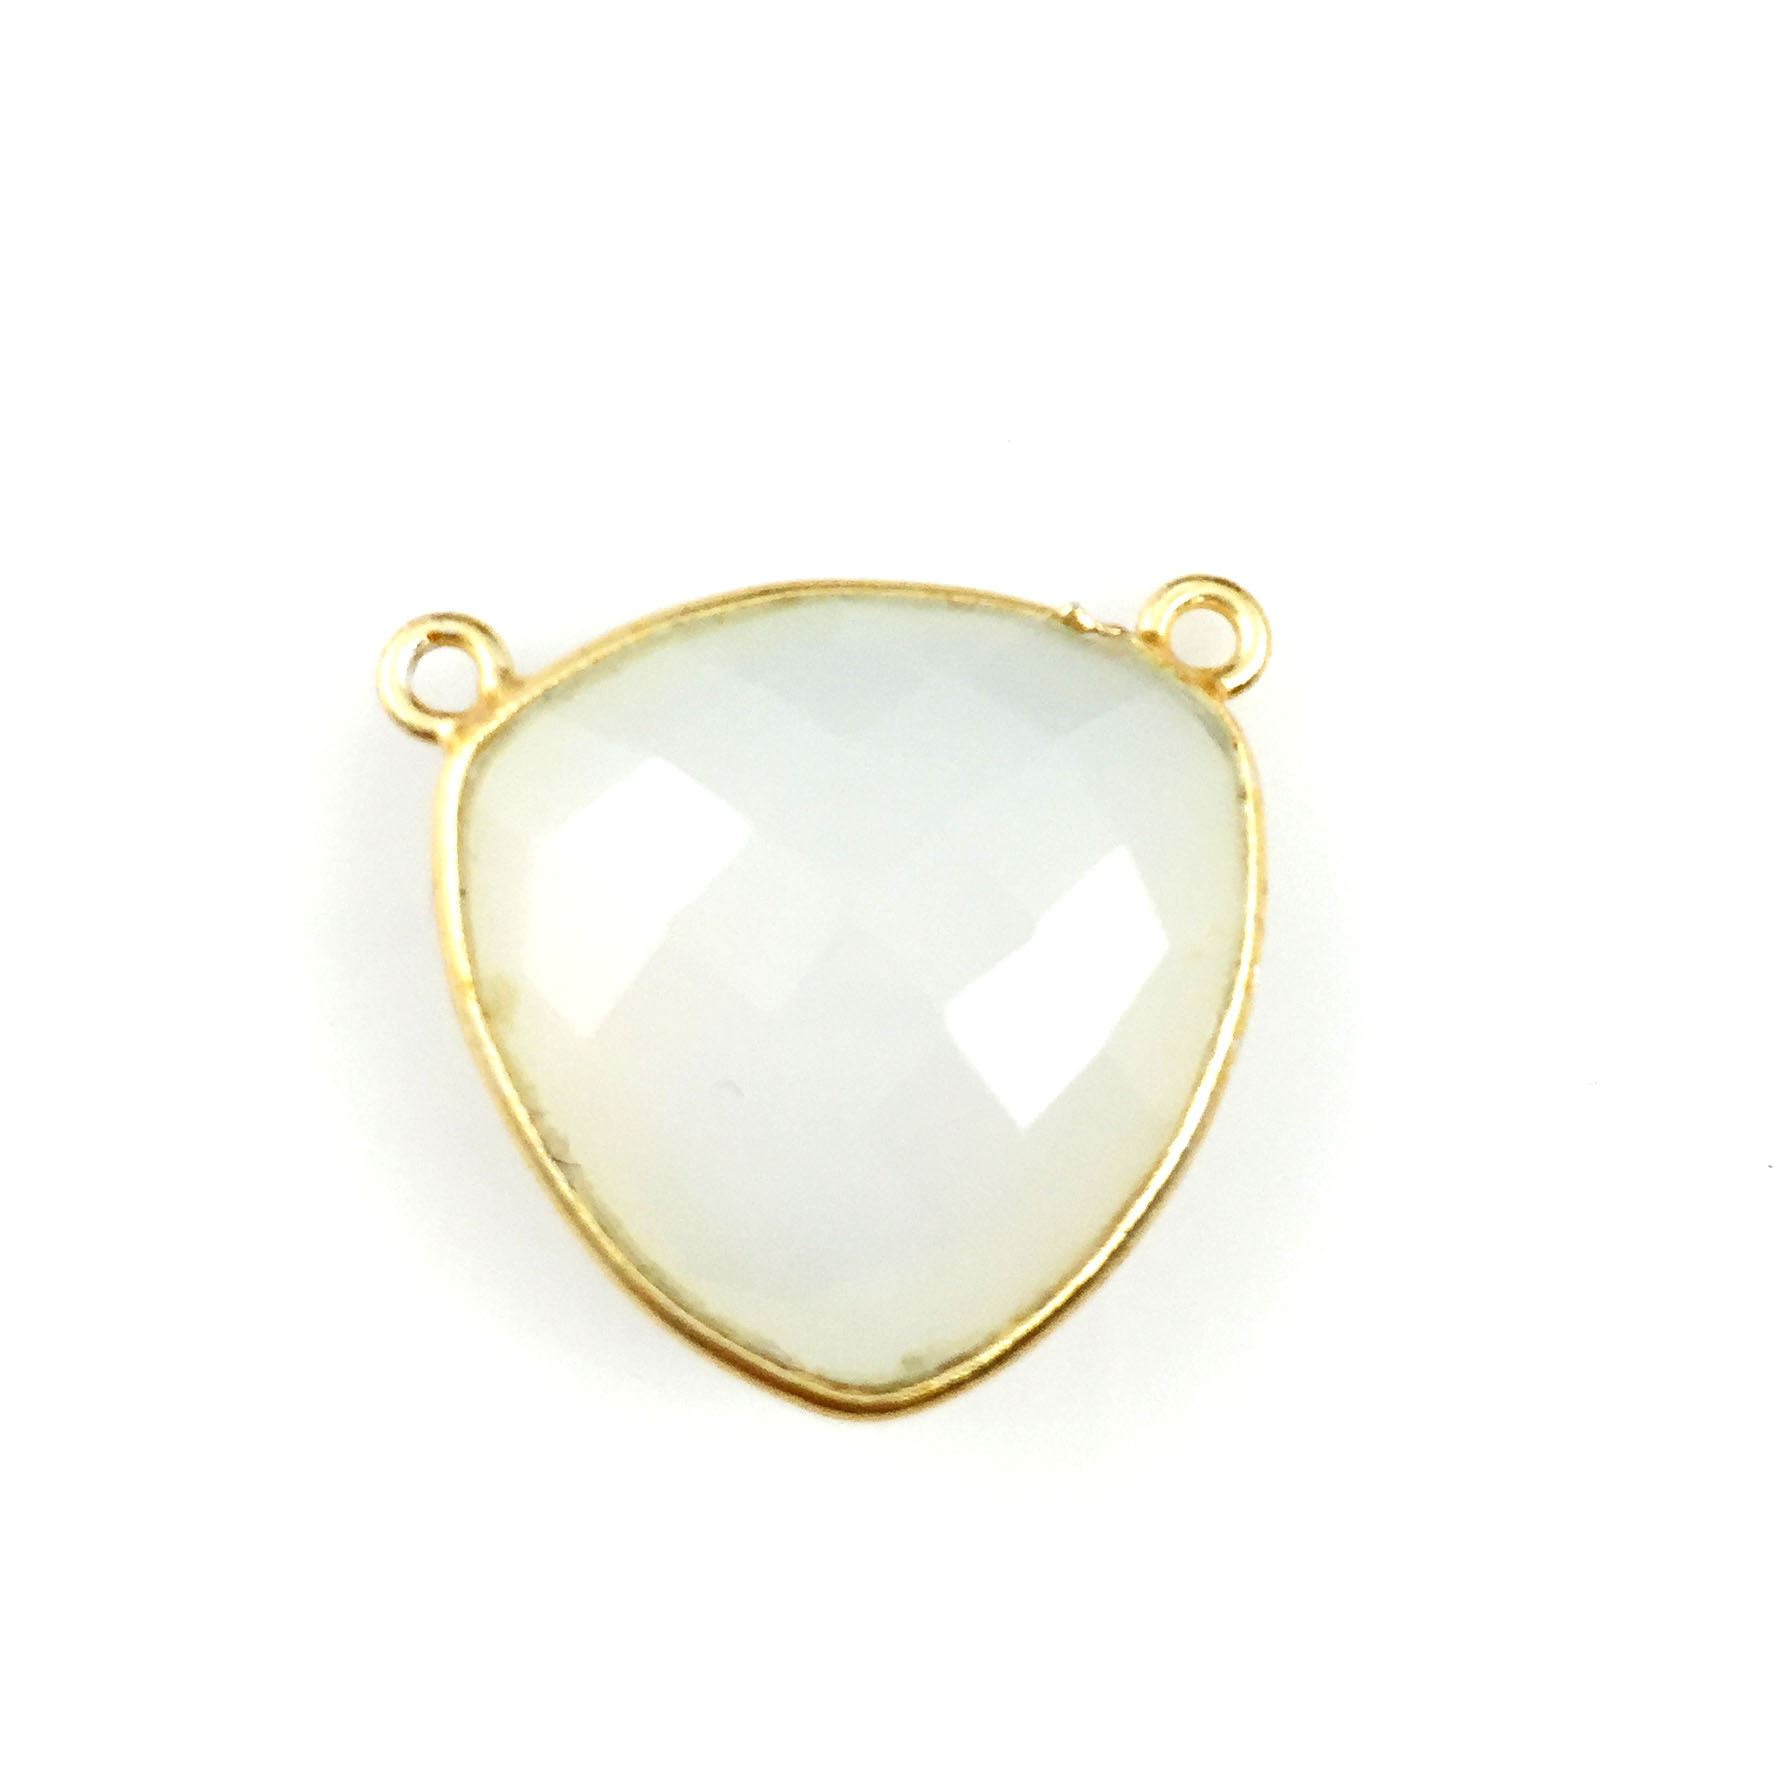 Bezel Gemstone Connector Pendant - Opalite Quartz - Gold plated Sterling Silver - Large Trillion Shaped Faceted - 18 mm - 1 piece